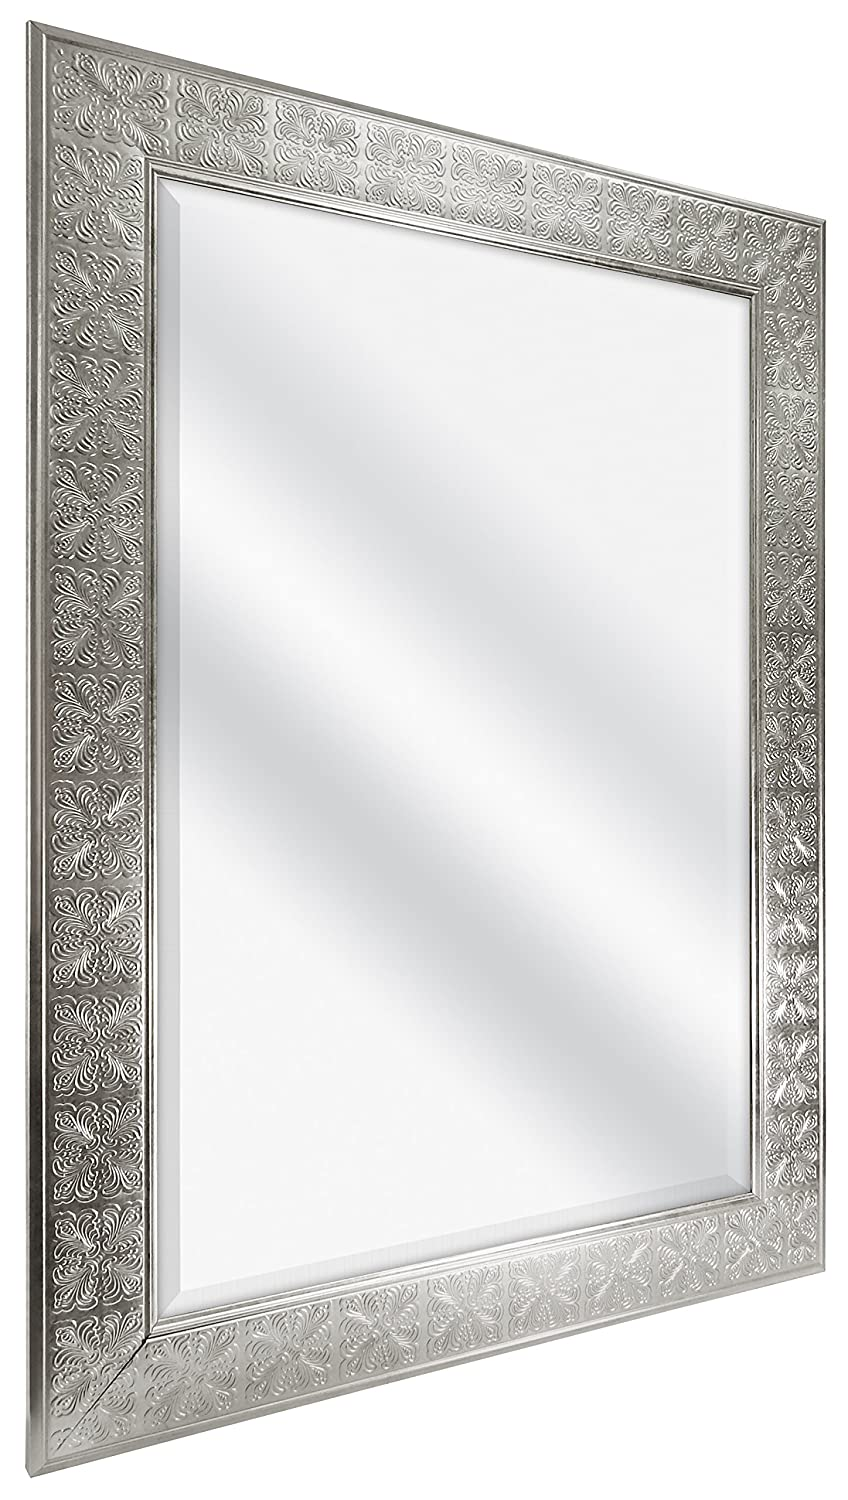 MCS 24×36 Inch Stamped Medallion Wall Mirror, 32×44 Inch Overall Size, Champagne Silver 47700 , 32 by 44-Inch,